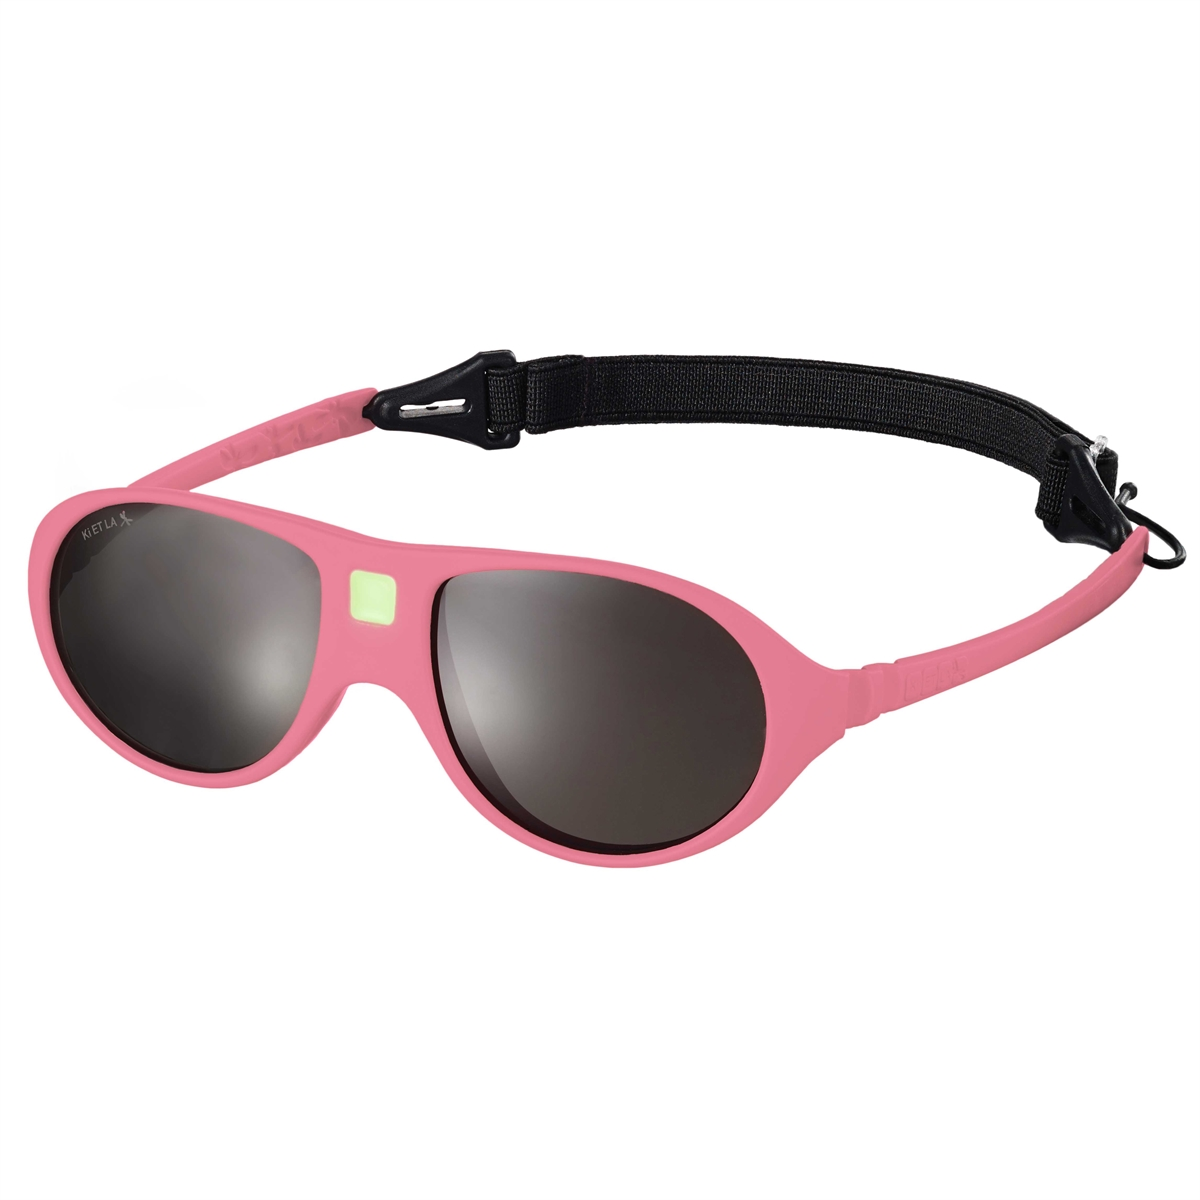 Mycey Unbreakable Sunglasses Age 2-4 Pink Child To The Local Mass